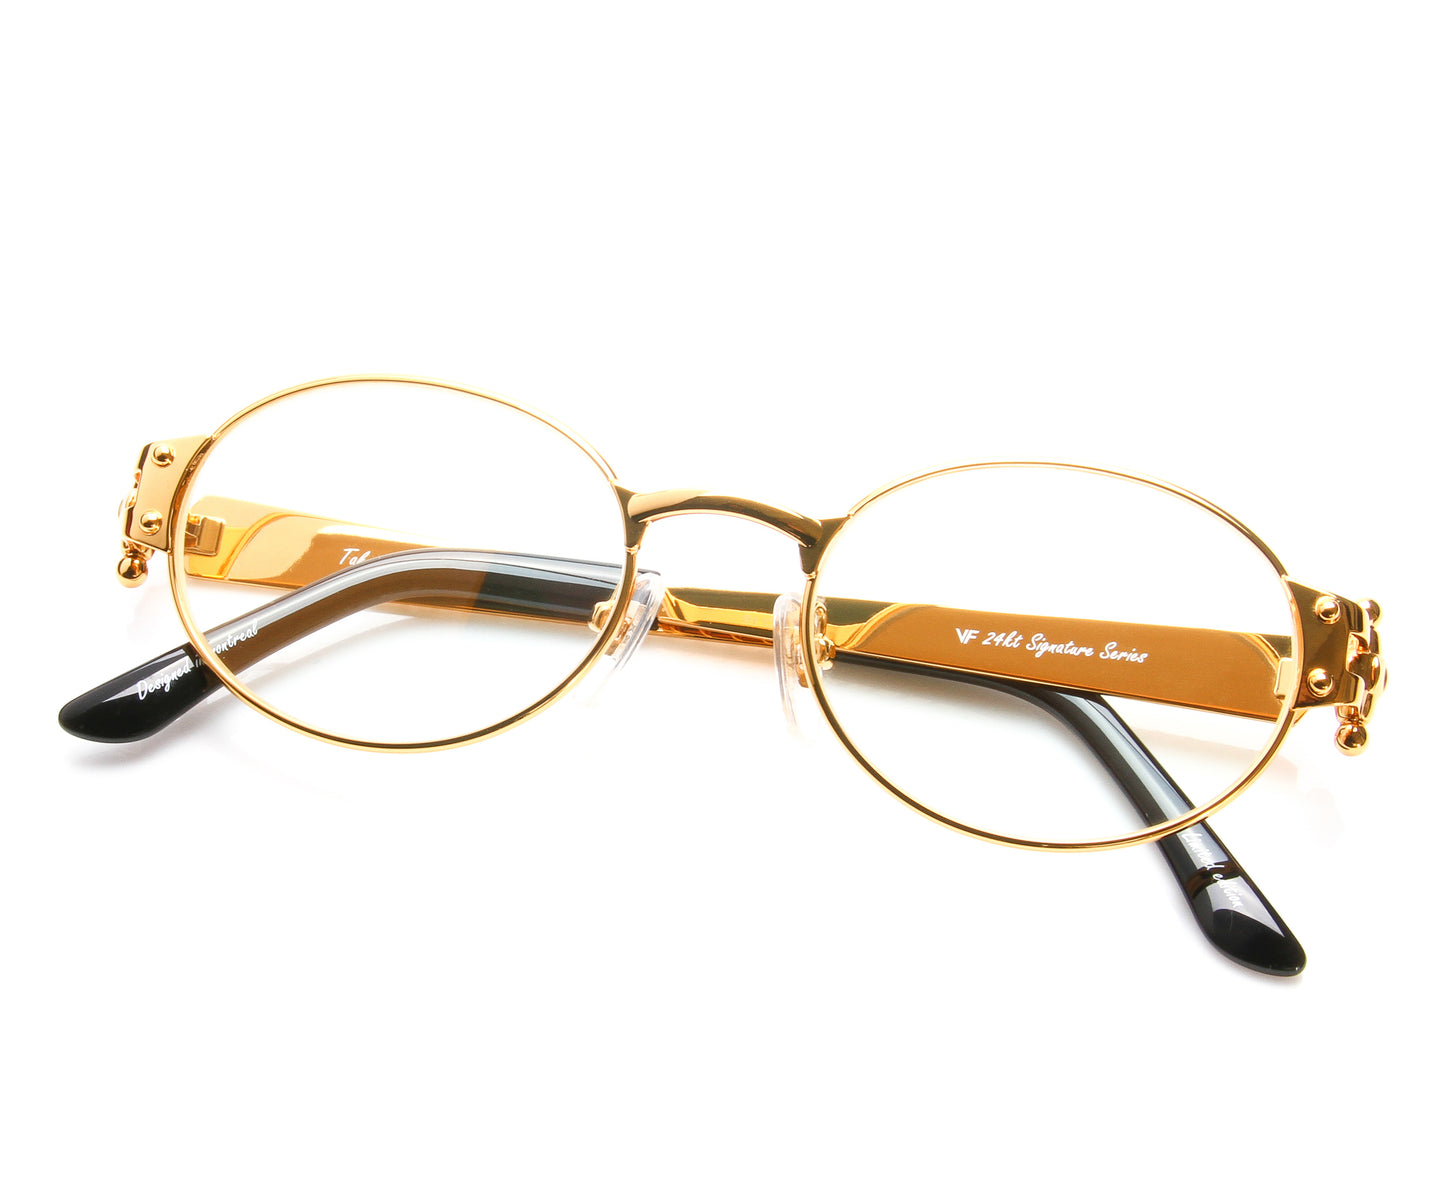 VF 2000 24KT Gold Masterpiece (Flash Gold), VF Masterpiece , glasses frames, eyeglasses online, eyeglass frames, mens glasses, womens glasses, buy glasses online, designer eyeglasses, vintage sunglasses, retro sunglasses, vintage glasses, sunglass, eyeglass, glasses, lens, vintage frames company, vf